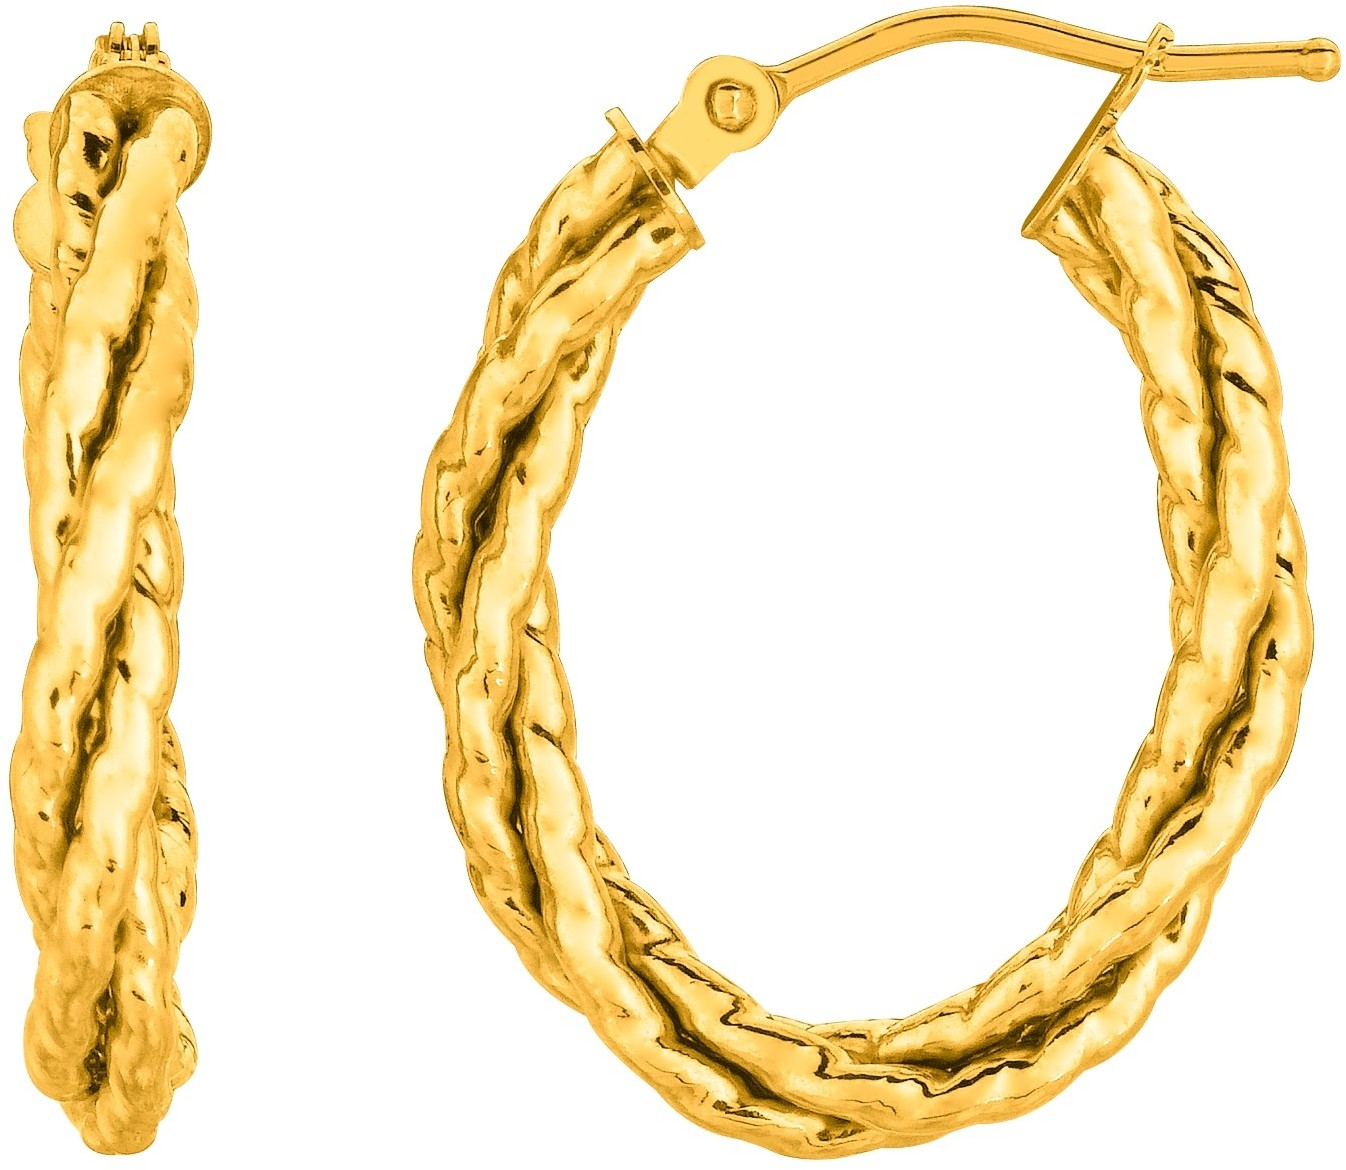 14K Yellow Gold Shiny Twisted Oval Hoop Earrings